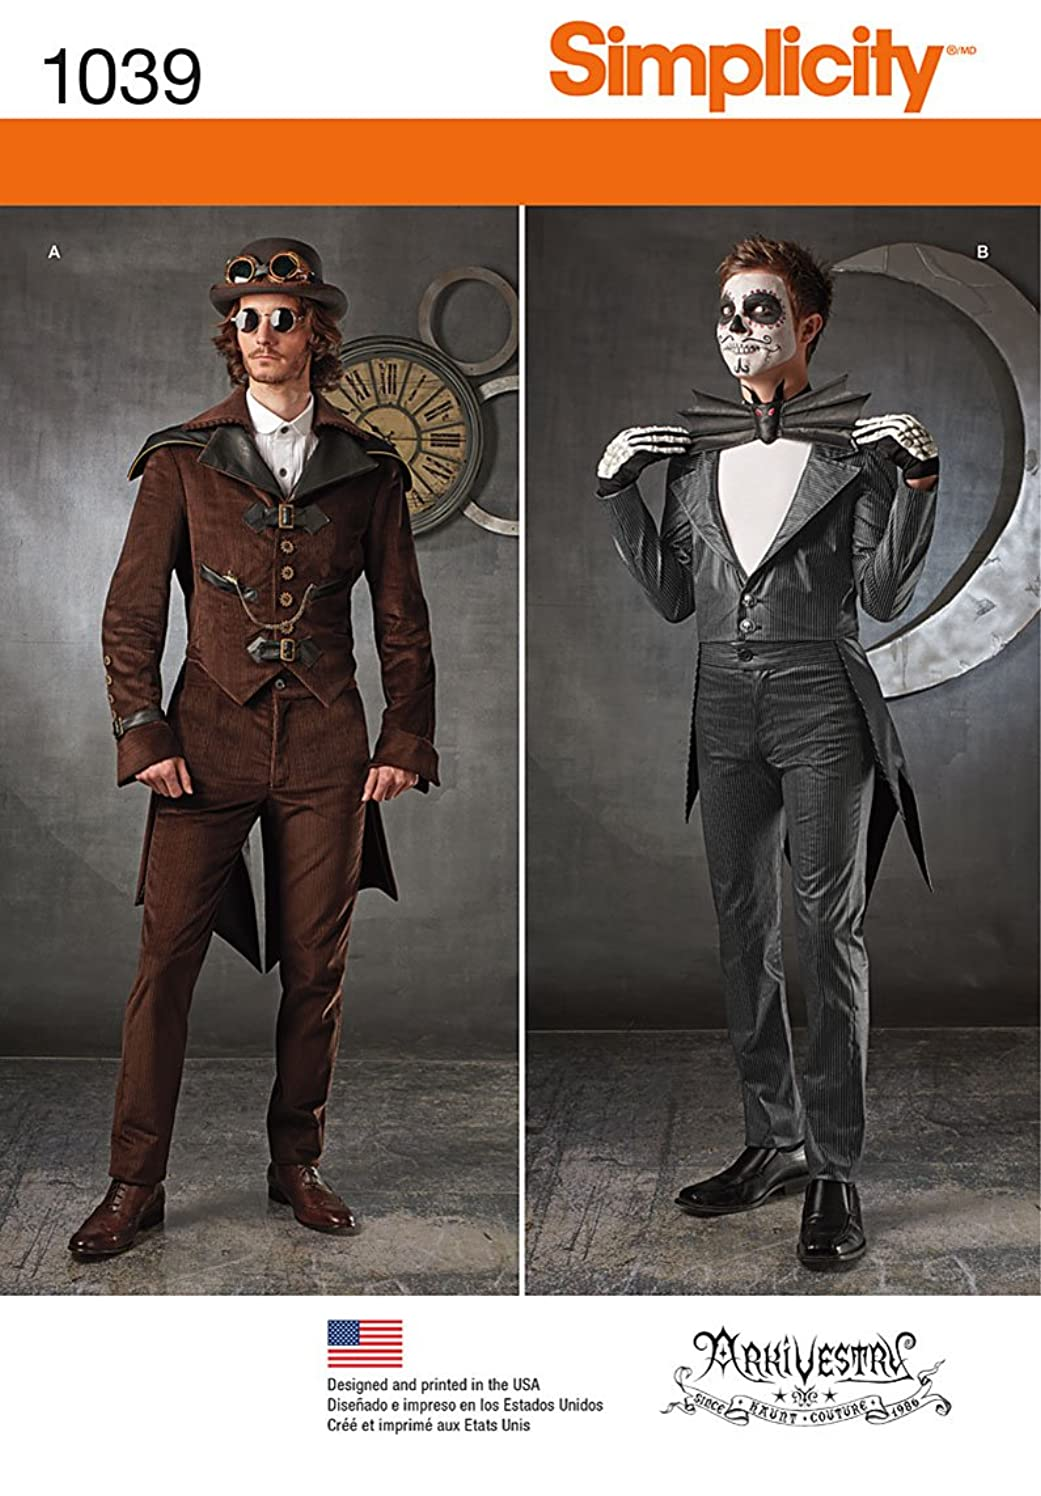 Simplicity Men's Steampunk and Skeleton Cosplay and Halloween Costume Sewing Pattern, Sizes 38-44